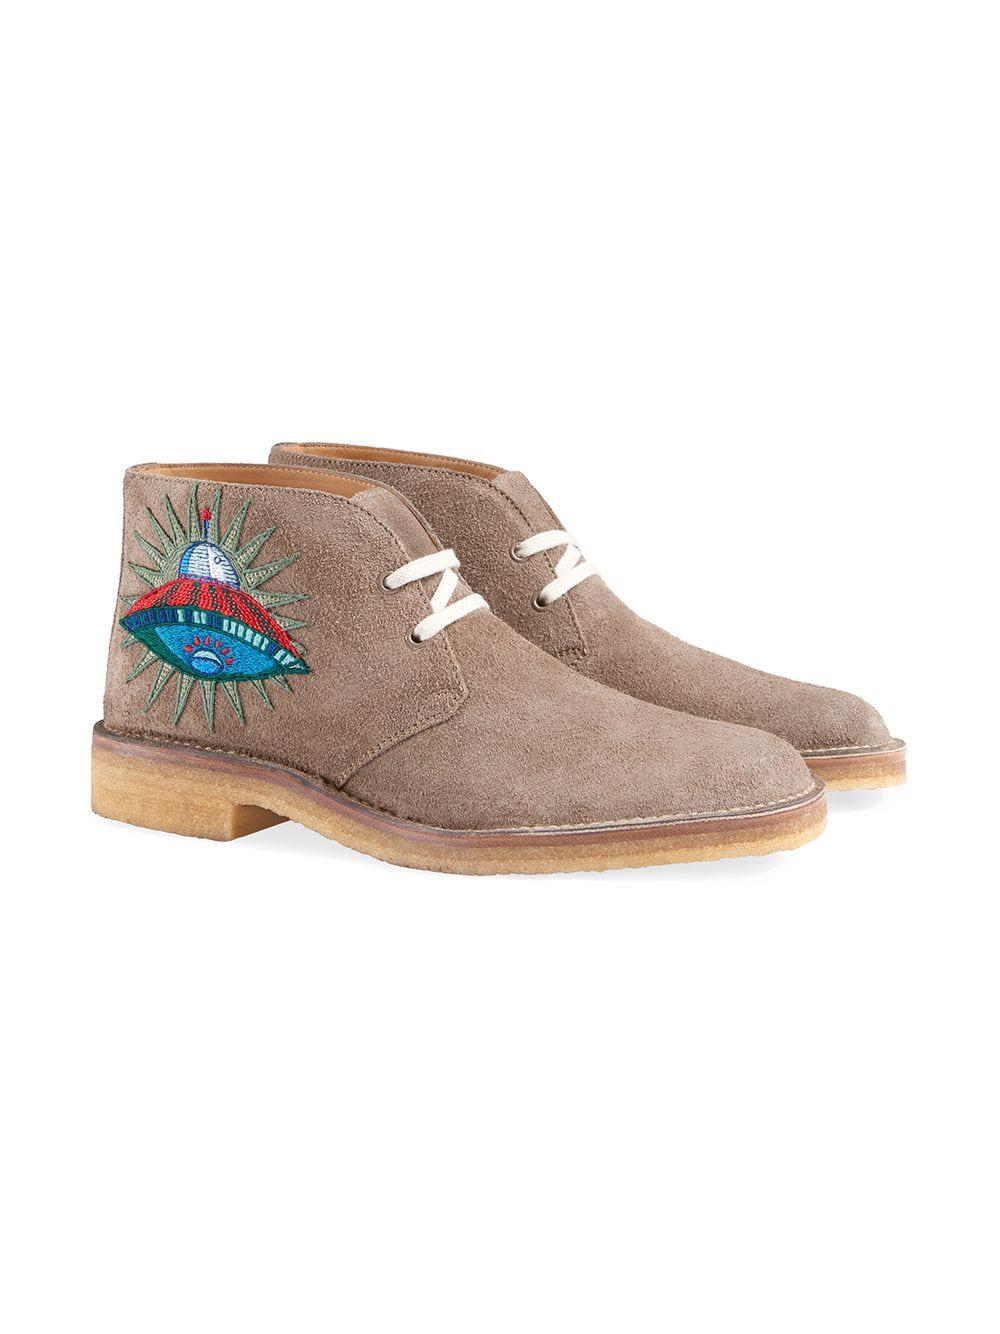 77c12598a8ca7 Lyst - Gucci Suede Boots With Appliqués for Men